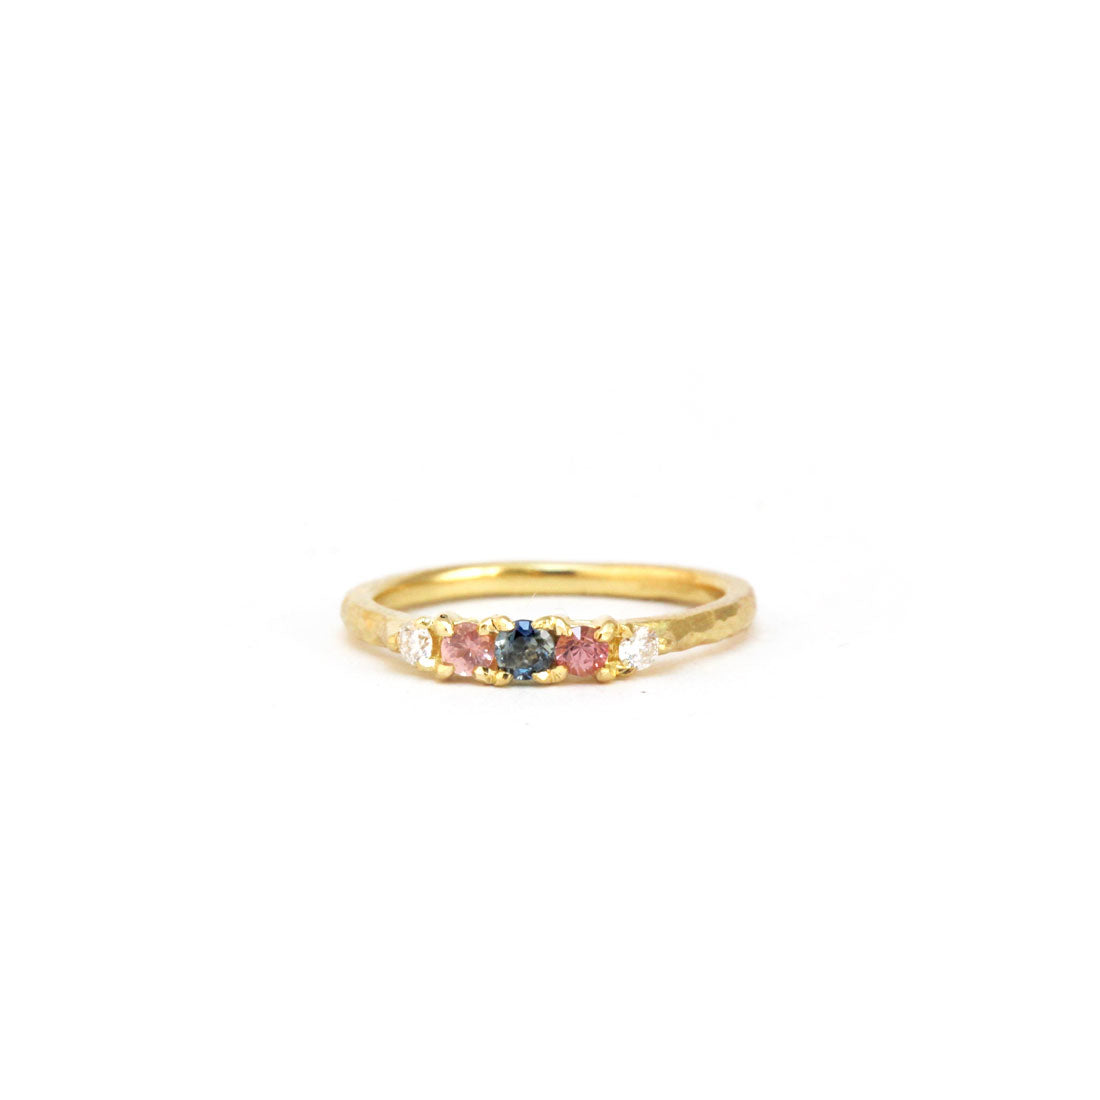 Sapphire engagement ring in yellow gold with pink sapphire